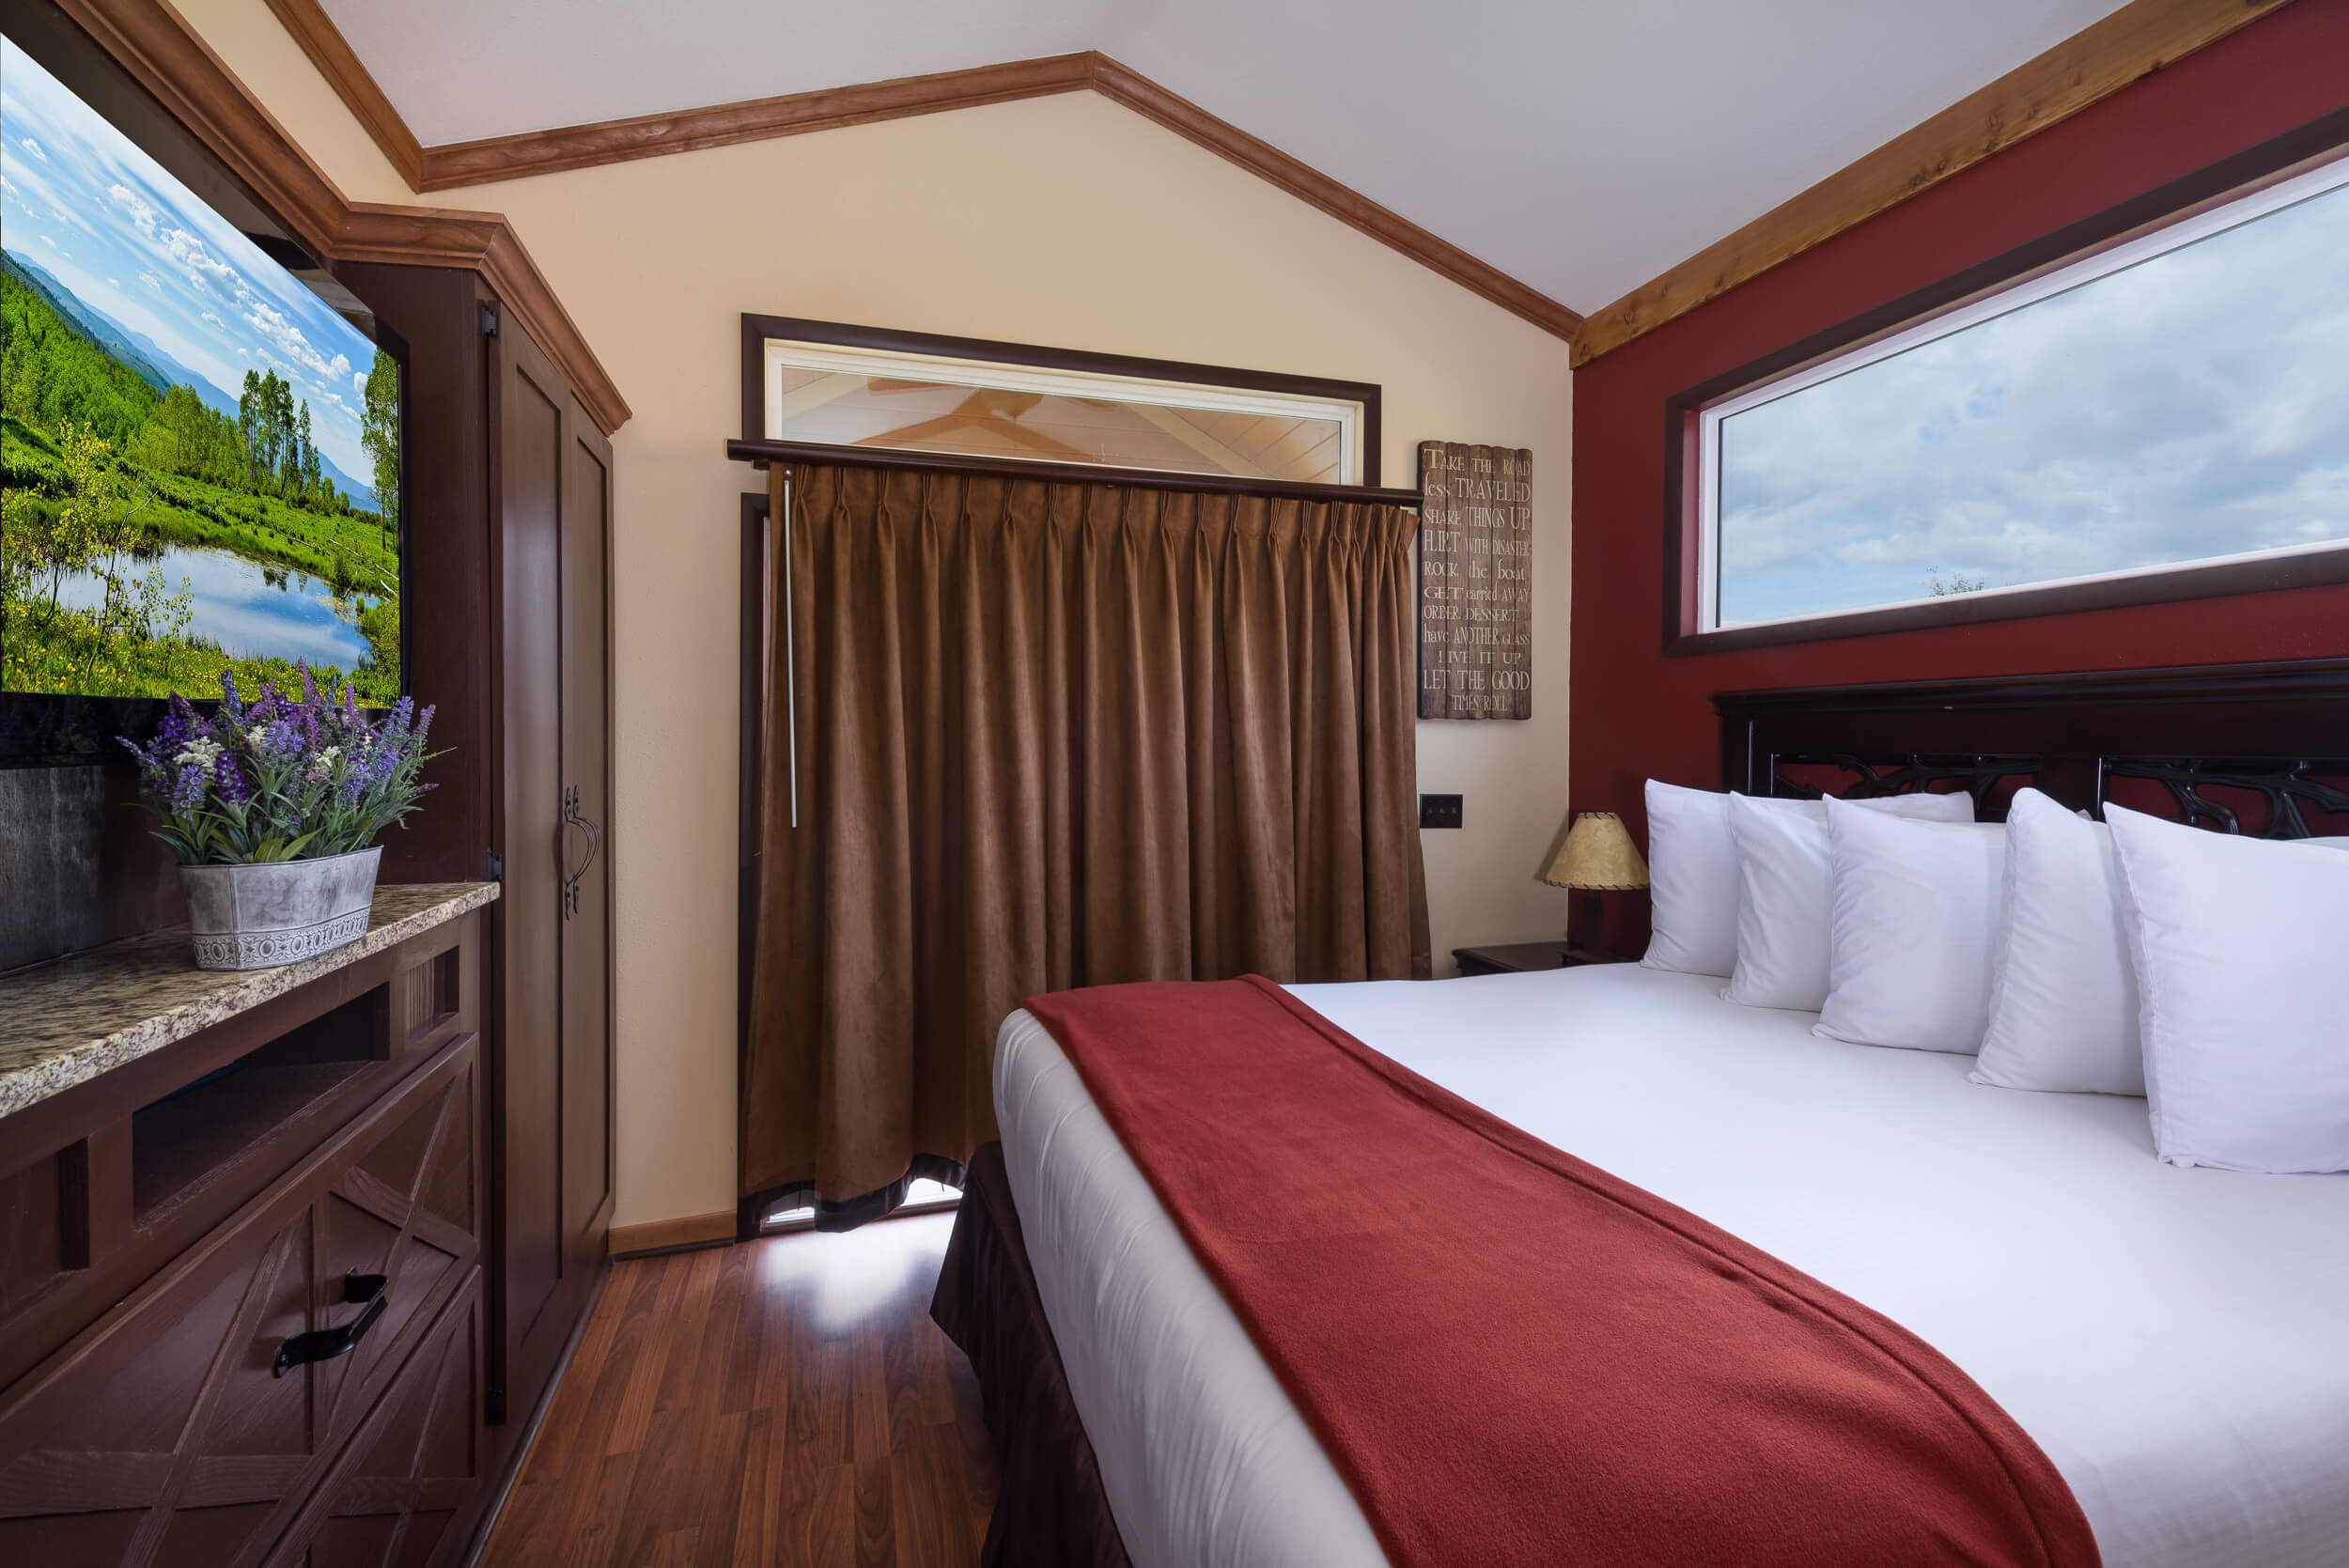 Queen Bed in Rail Car | Westgate River Ranch Resort & Rodeo